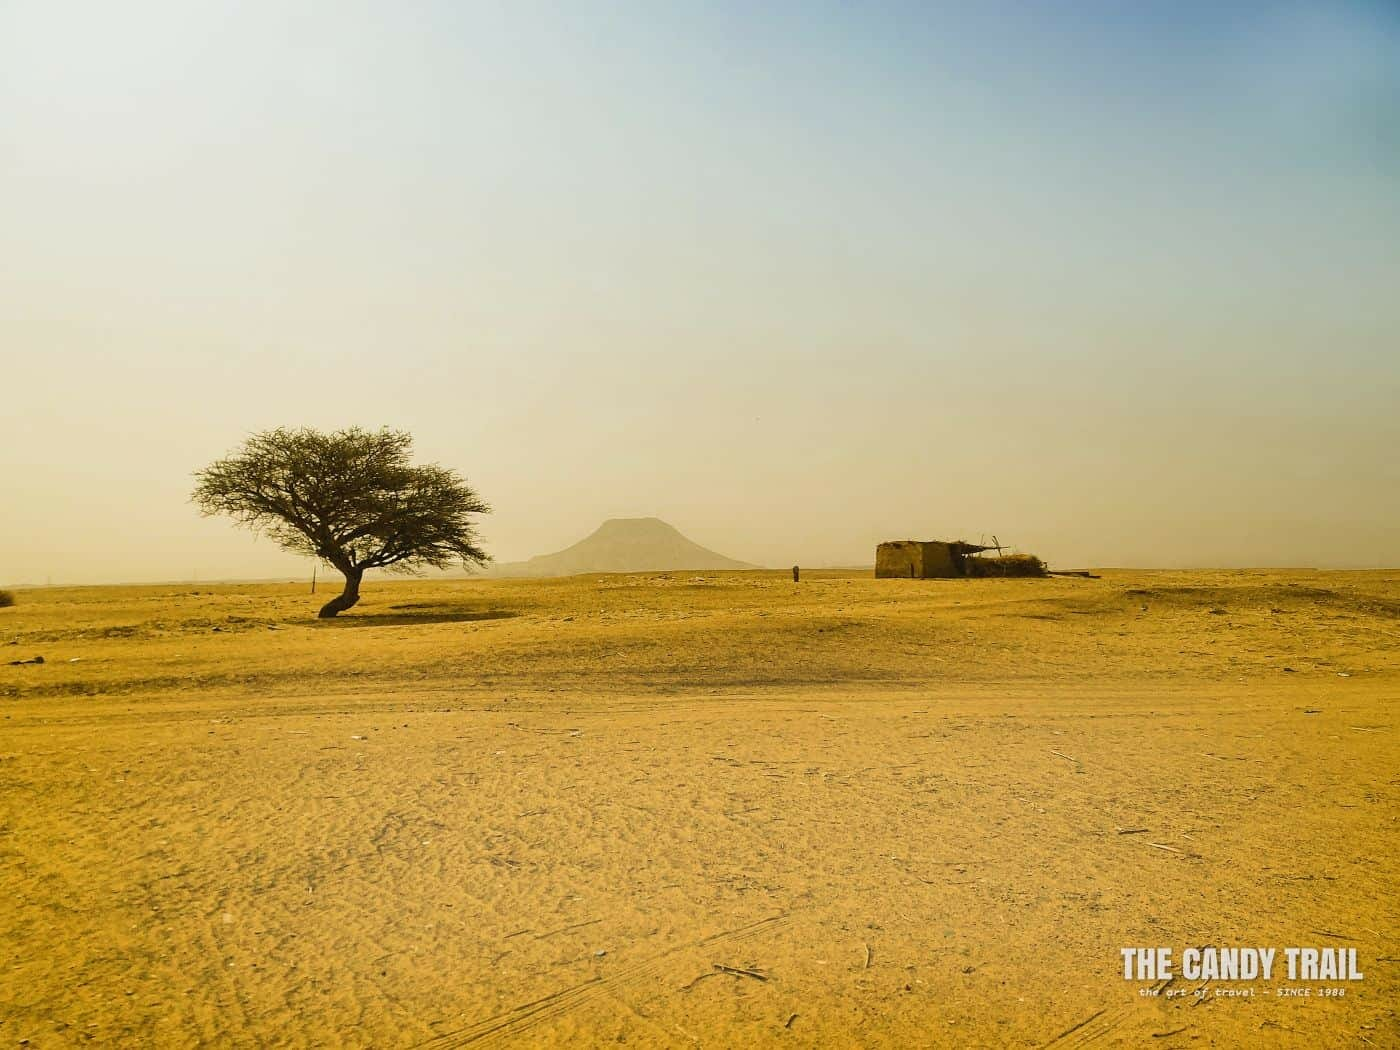 tree and hut in sahara desert sudan